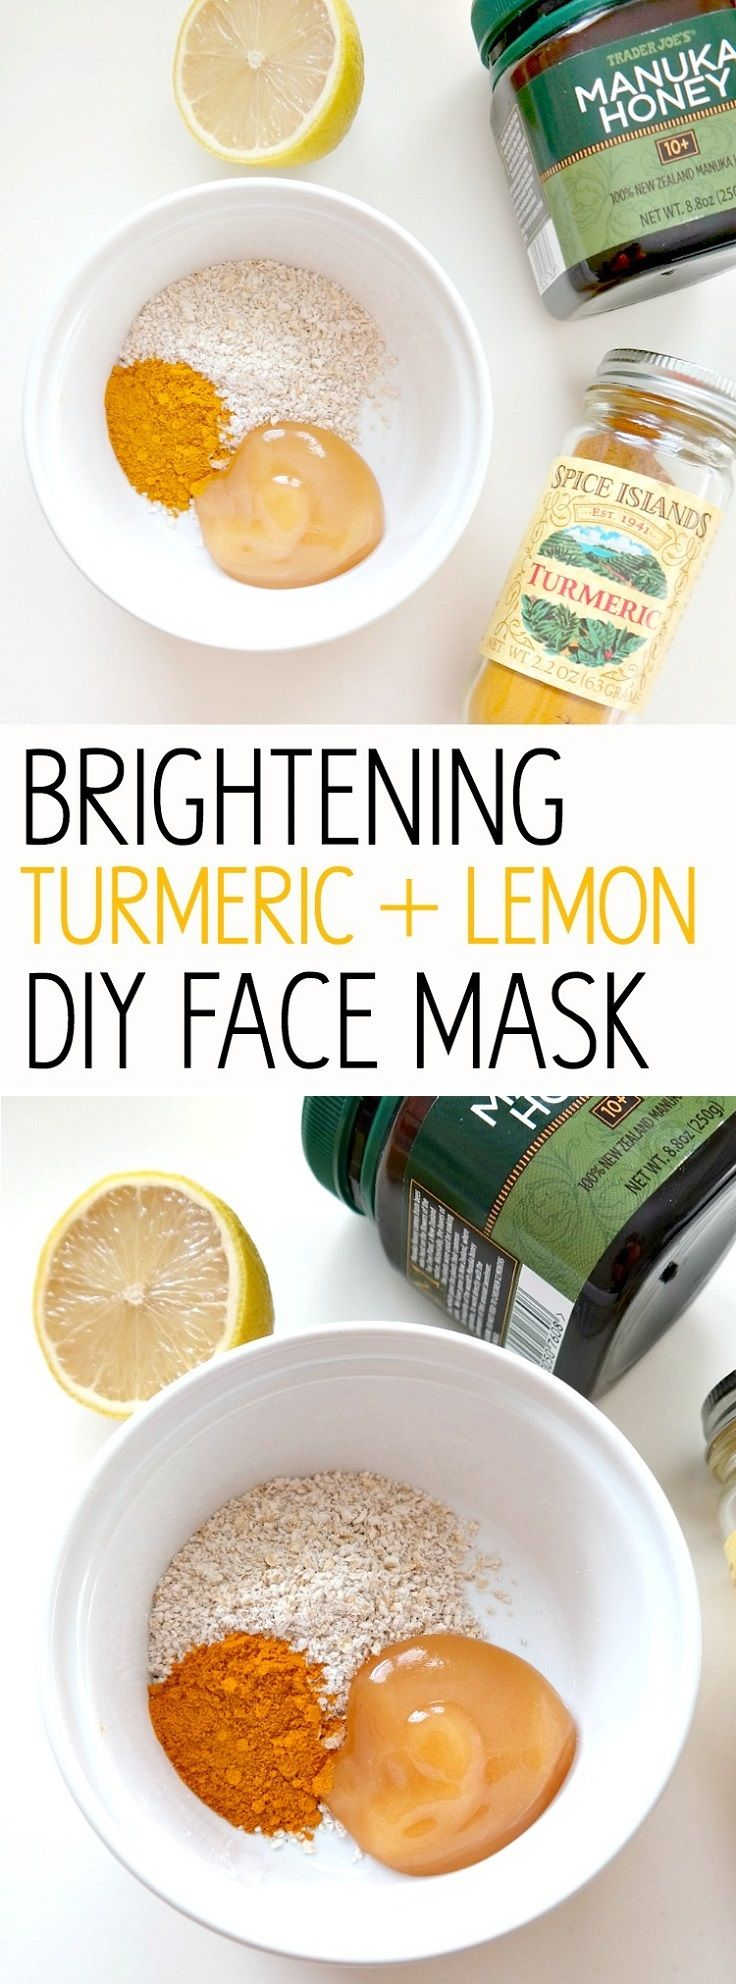 Brightening Turmeric + Lemon DIY Face Mask - 14 Best DIY Skin Brightening (Whitening) Products that Give Miraculous Results